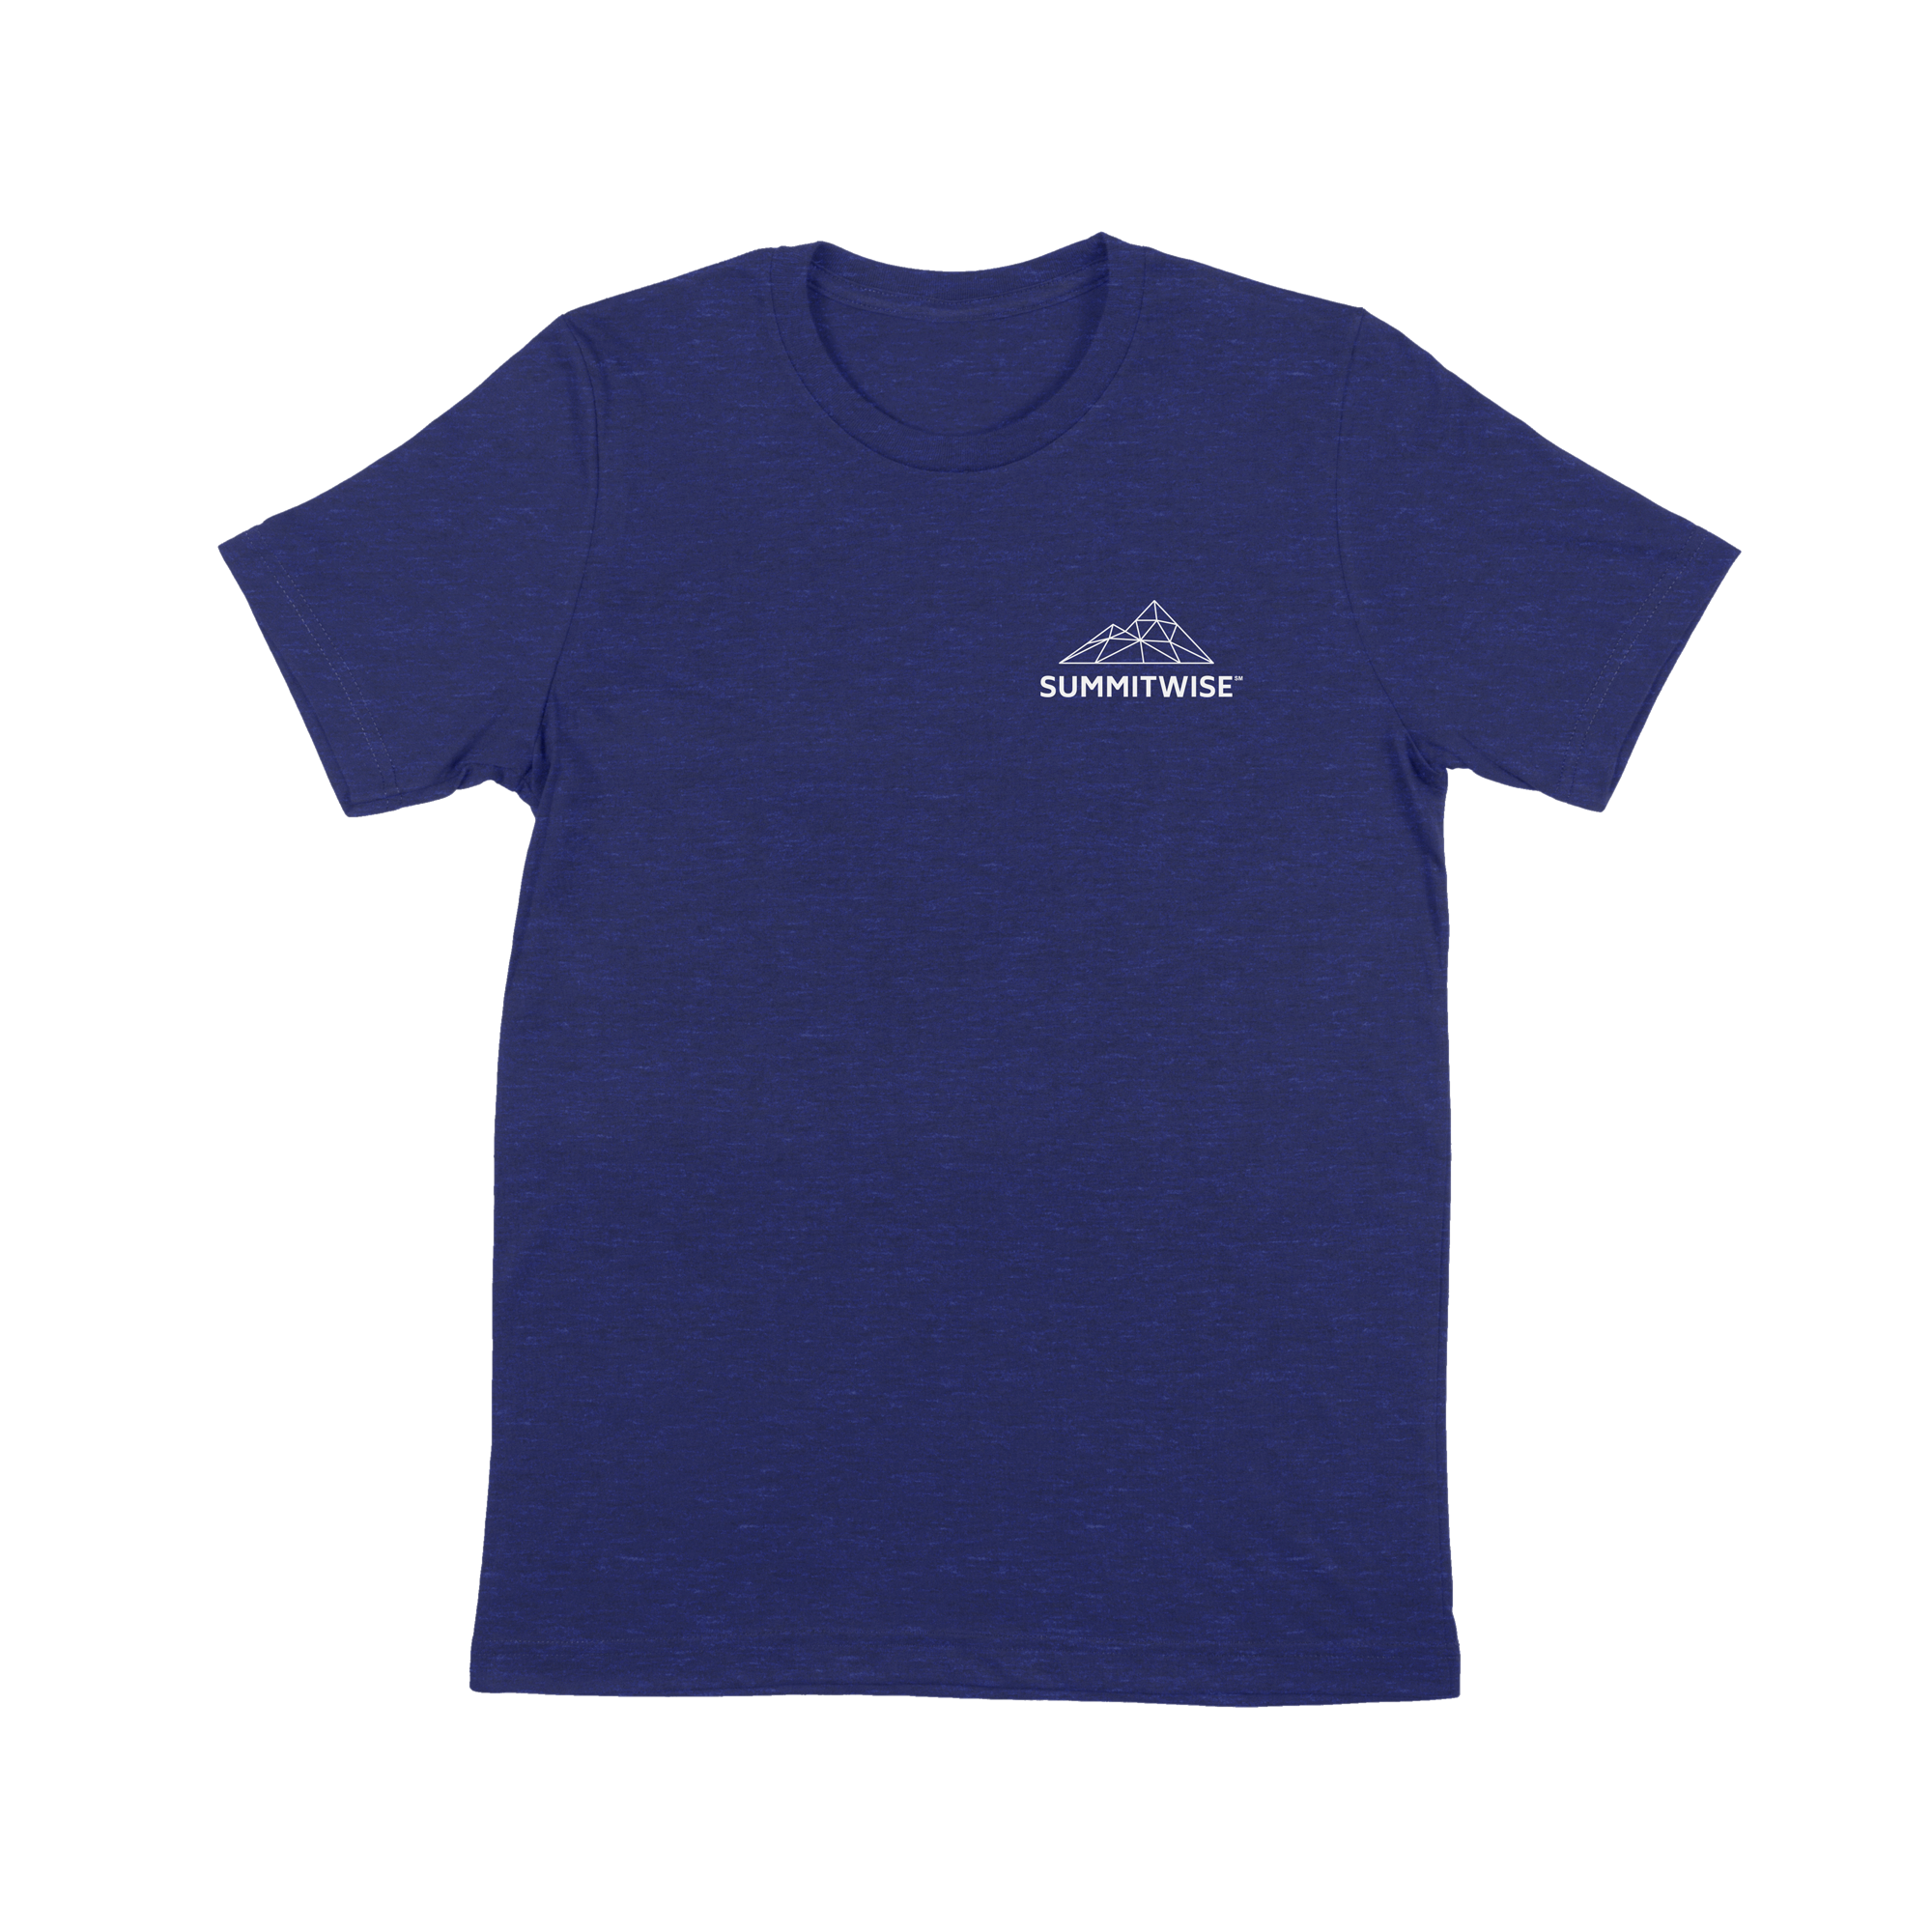 Ocean-and-Sea_Summitwise_T-Shirt_Front